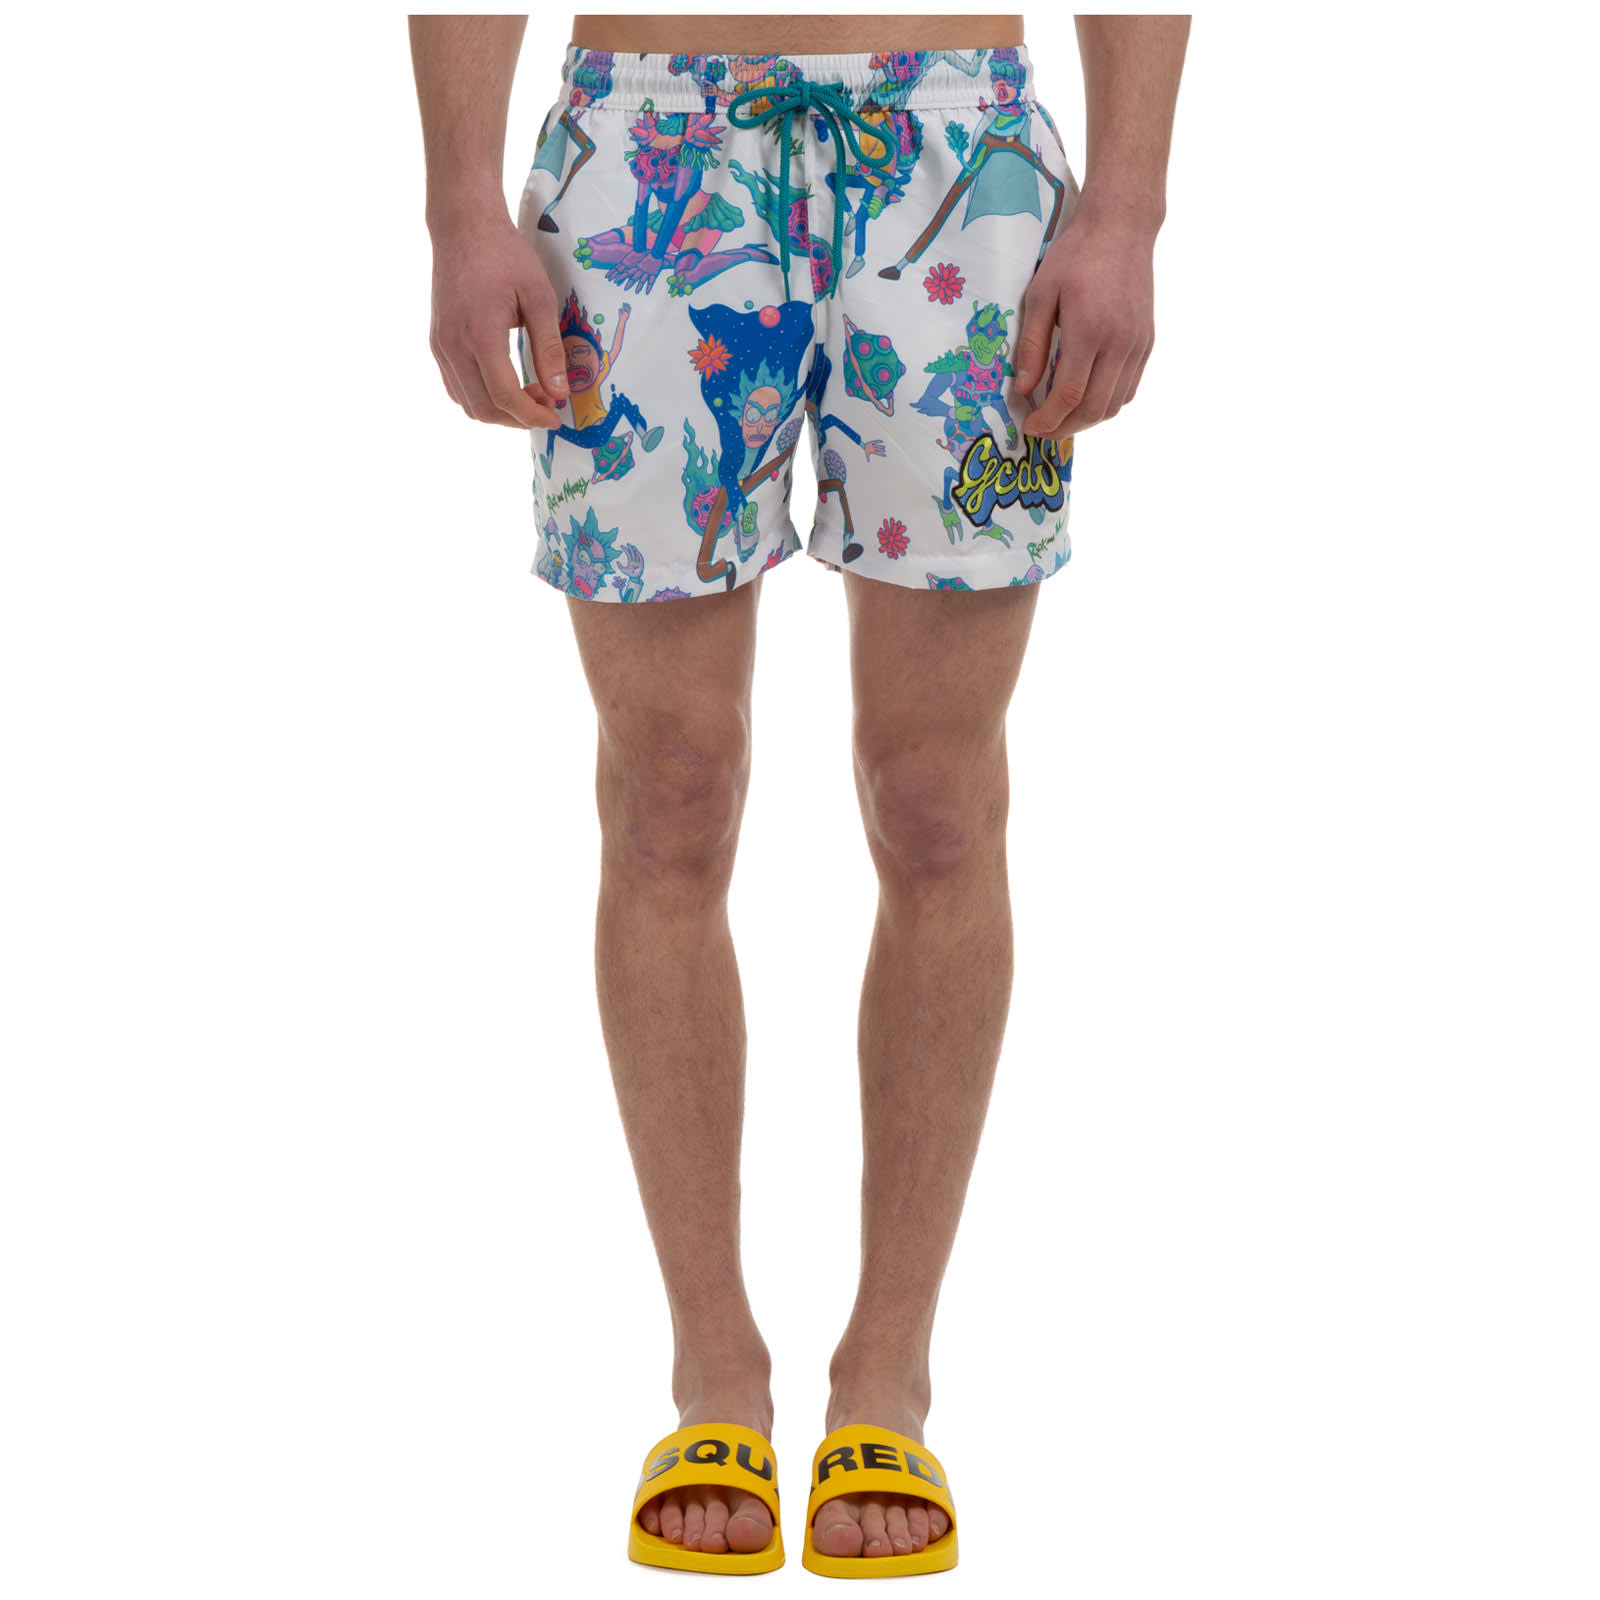 Gcds GCDS RICK & MORTY SWIMMING TRUNKS